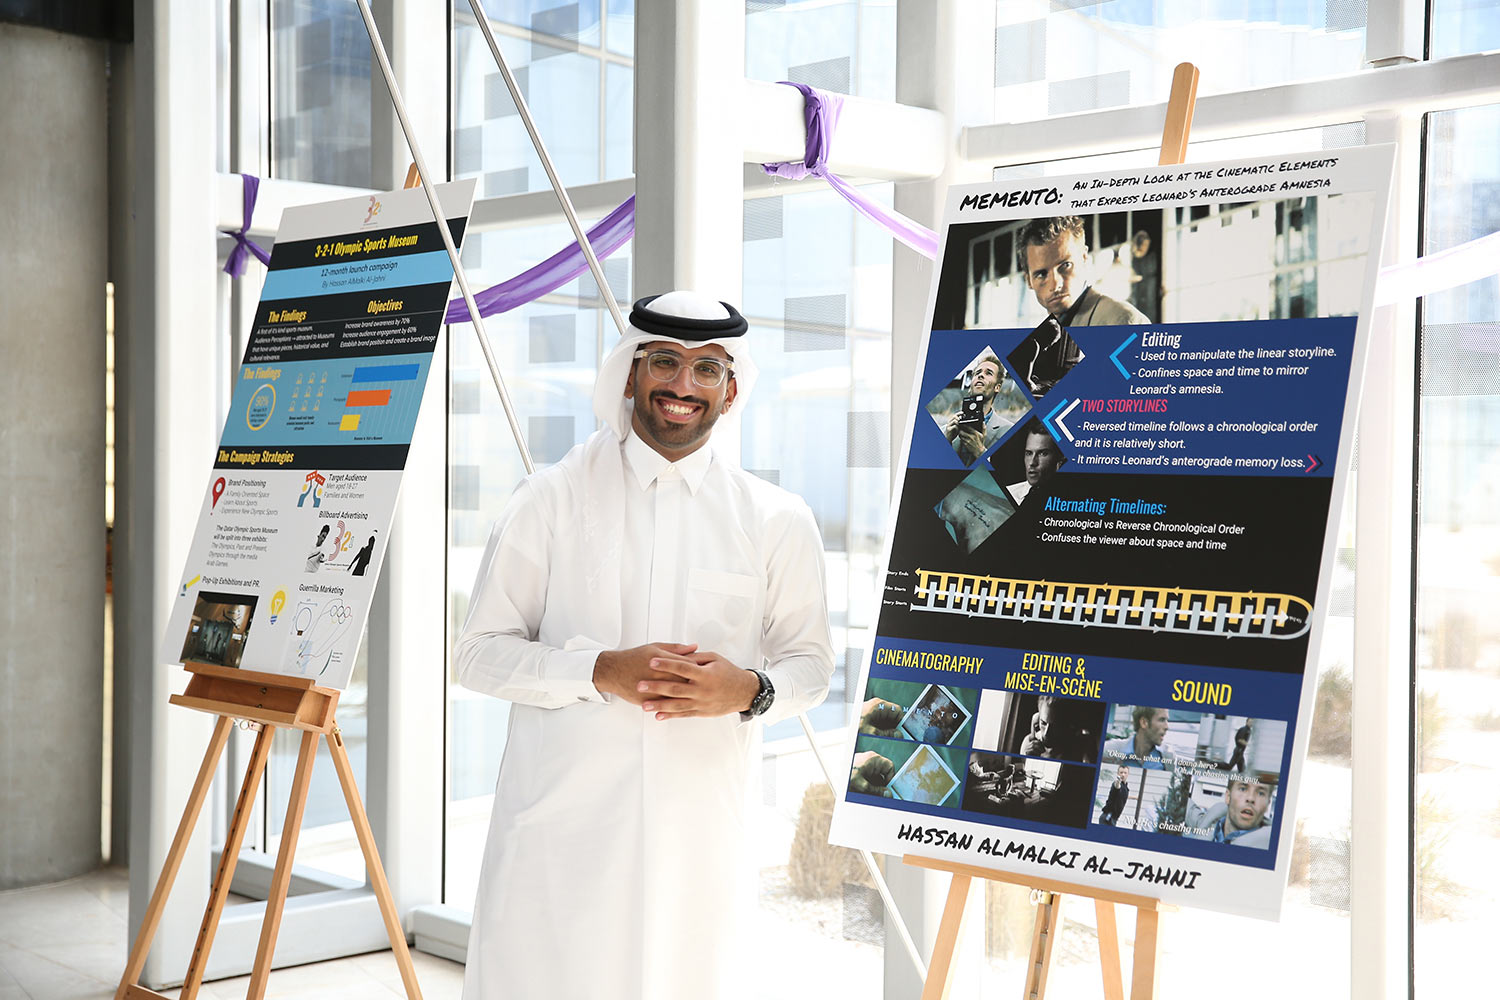 Student Hassan Al-Jahni won awards for creative writing and strategic communication